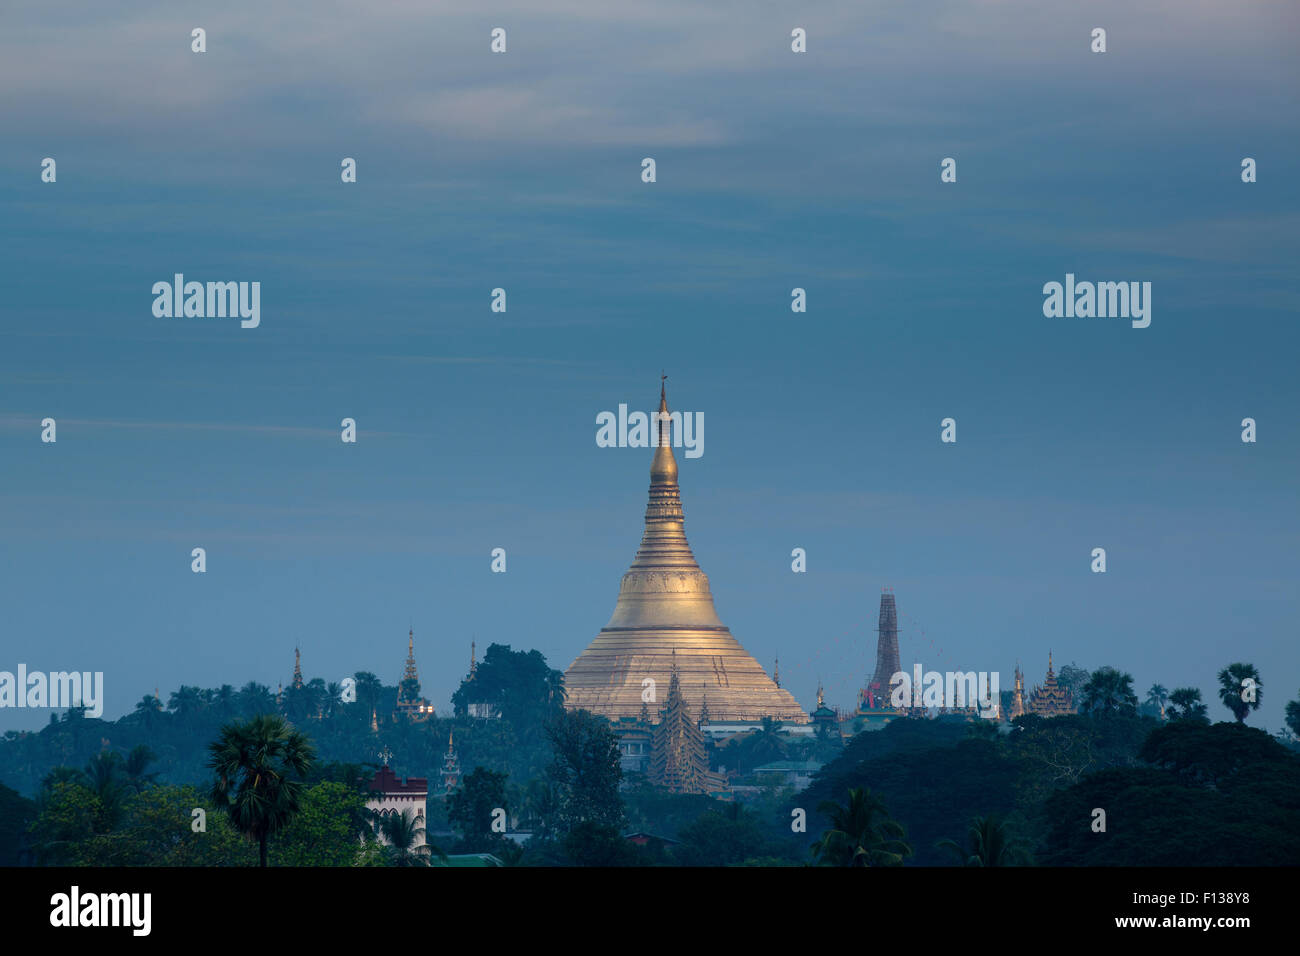 Shwedagon Pagoda in distance, Yangon, Myanmar. November 2012. - Stock Image